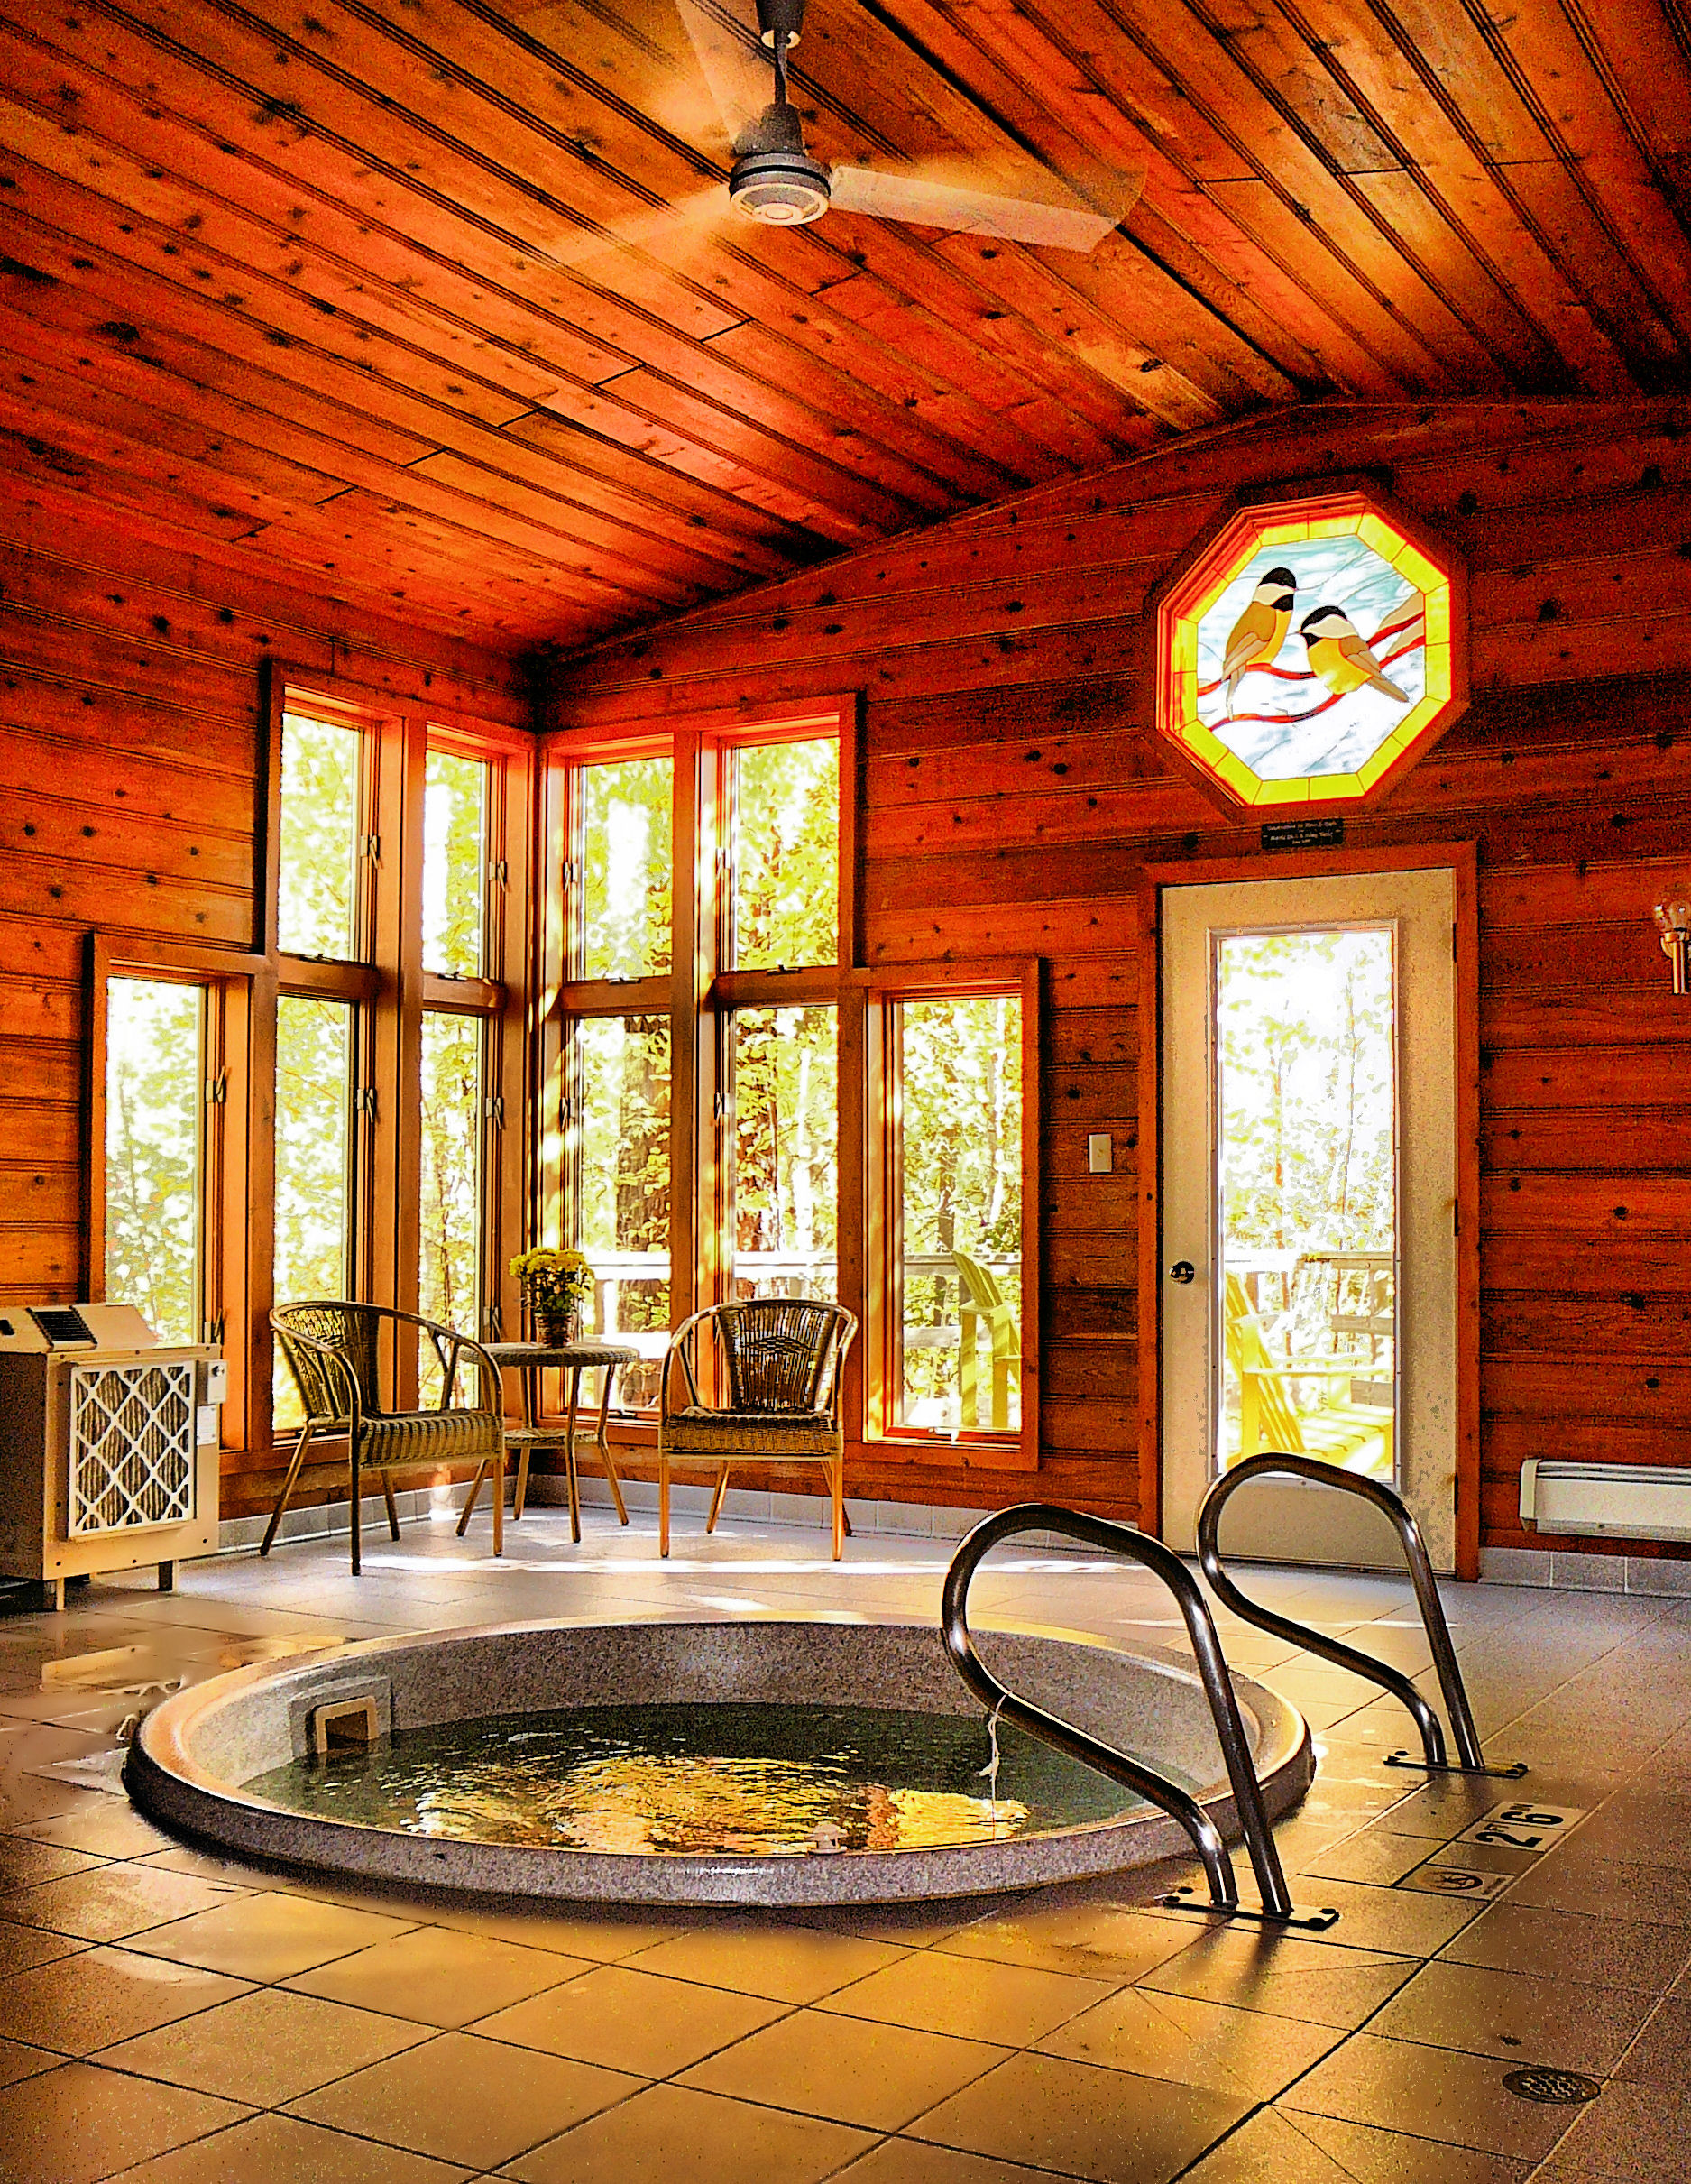 bedroomsuite silver hotel resort star summer suites tub accommodations mn hot mountain packages t lodging creek vance romantic